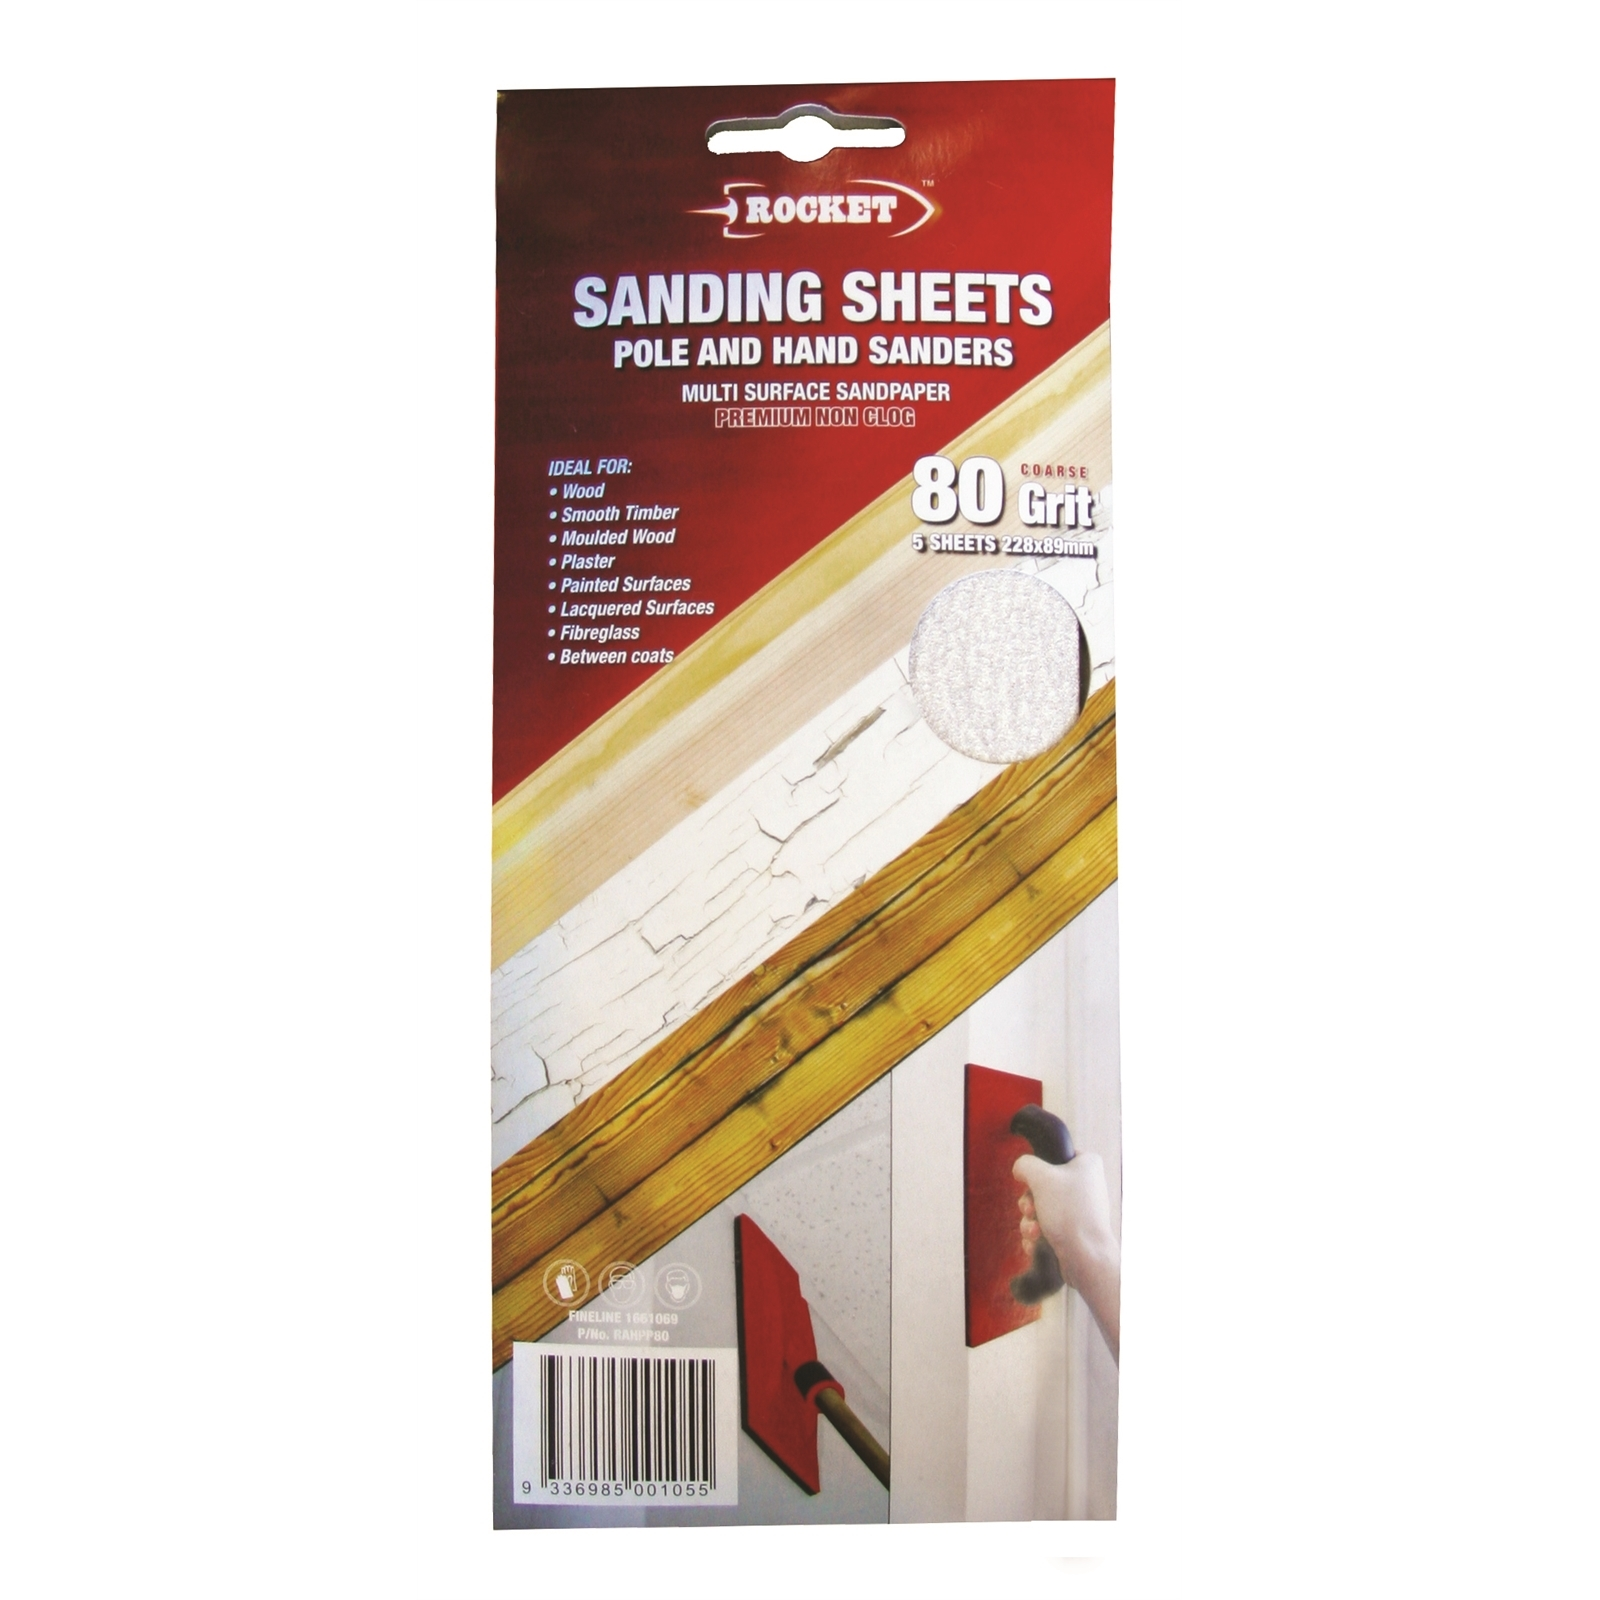 Rocket 80G Hand And Pole Sanding Sheet - 5 Pack